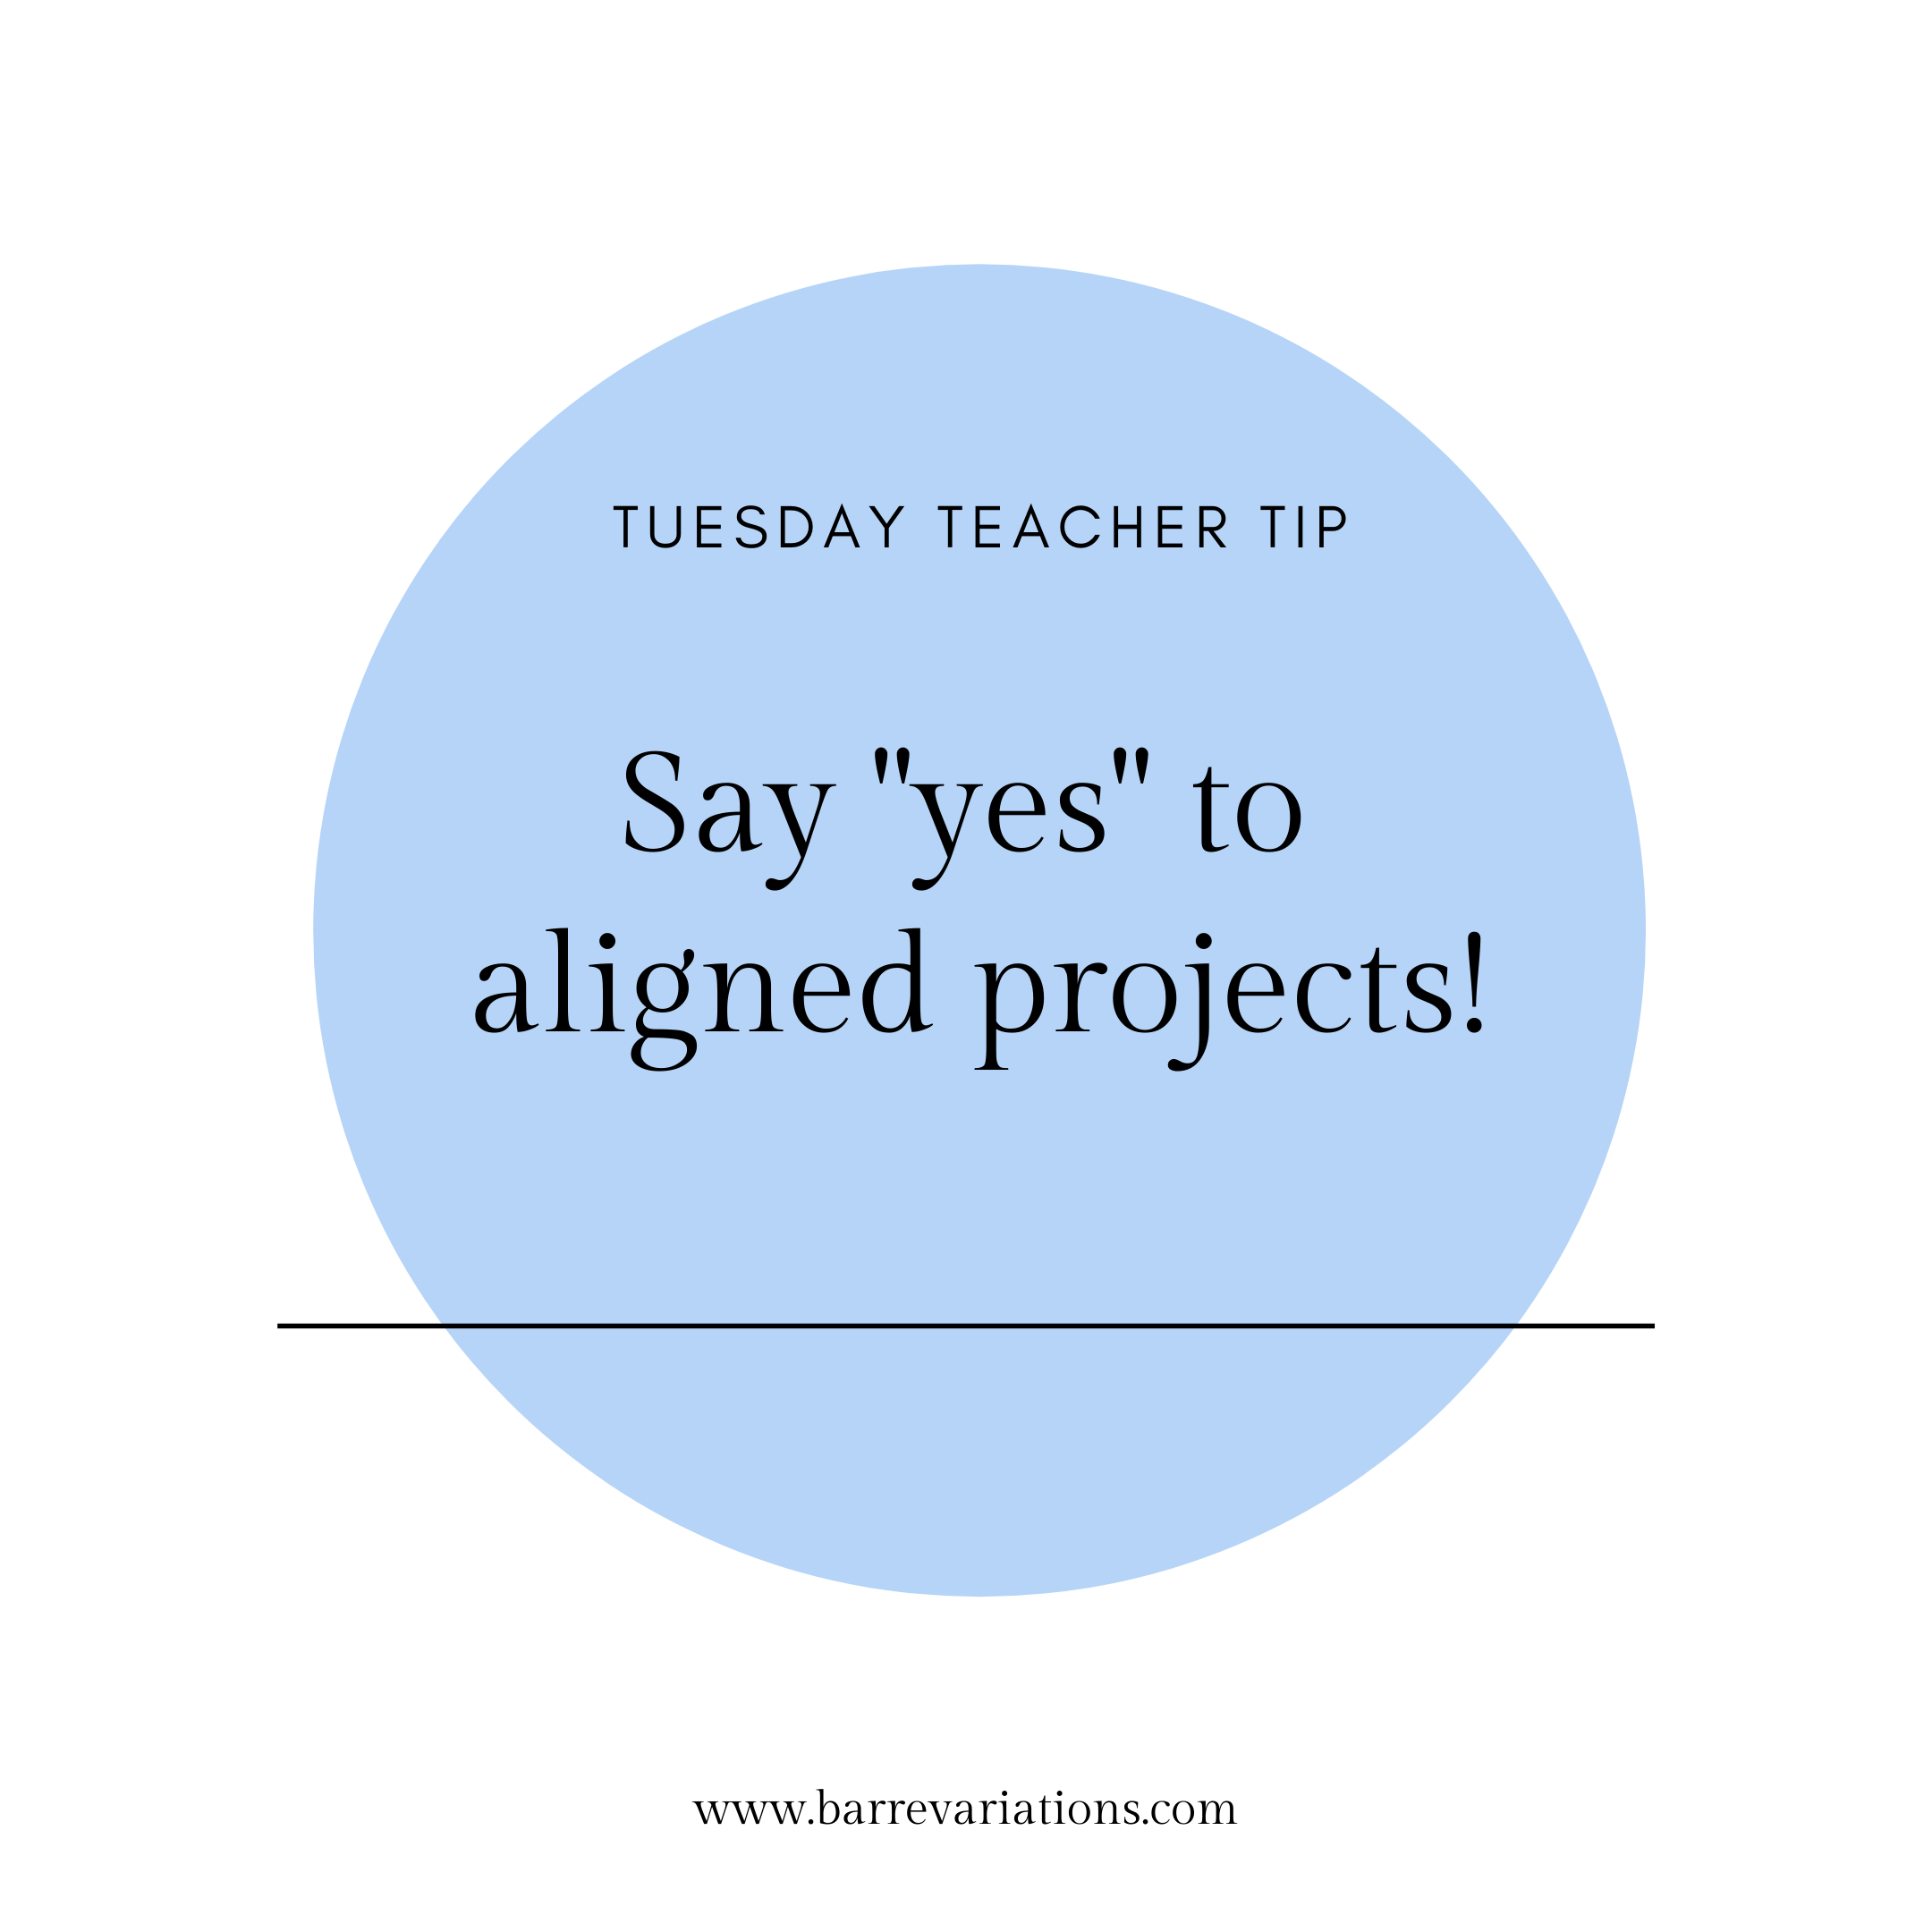 image of teacher tip say yes to aligned projects